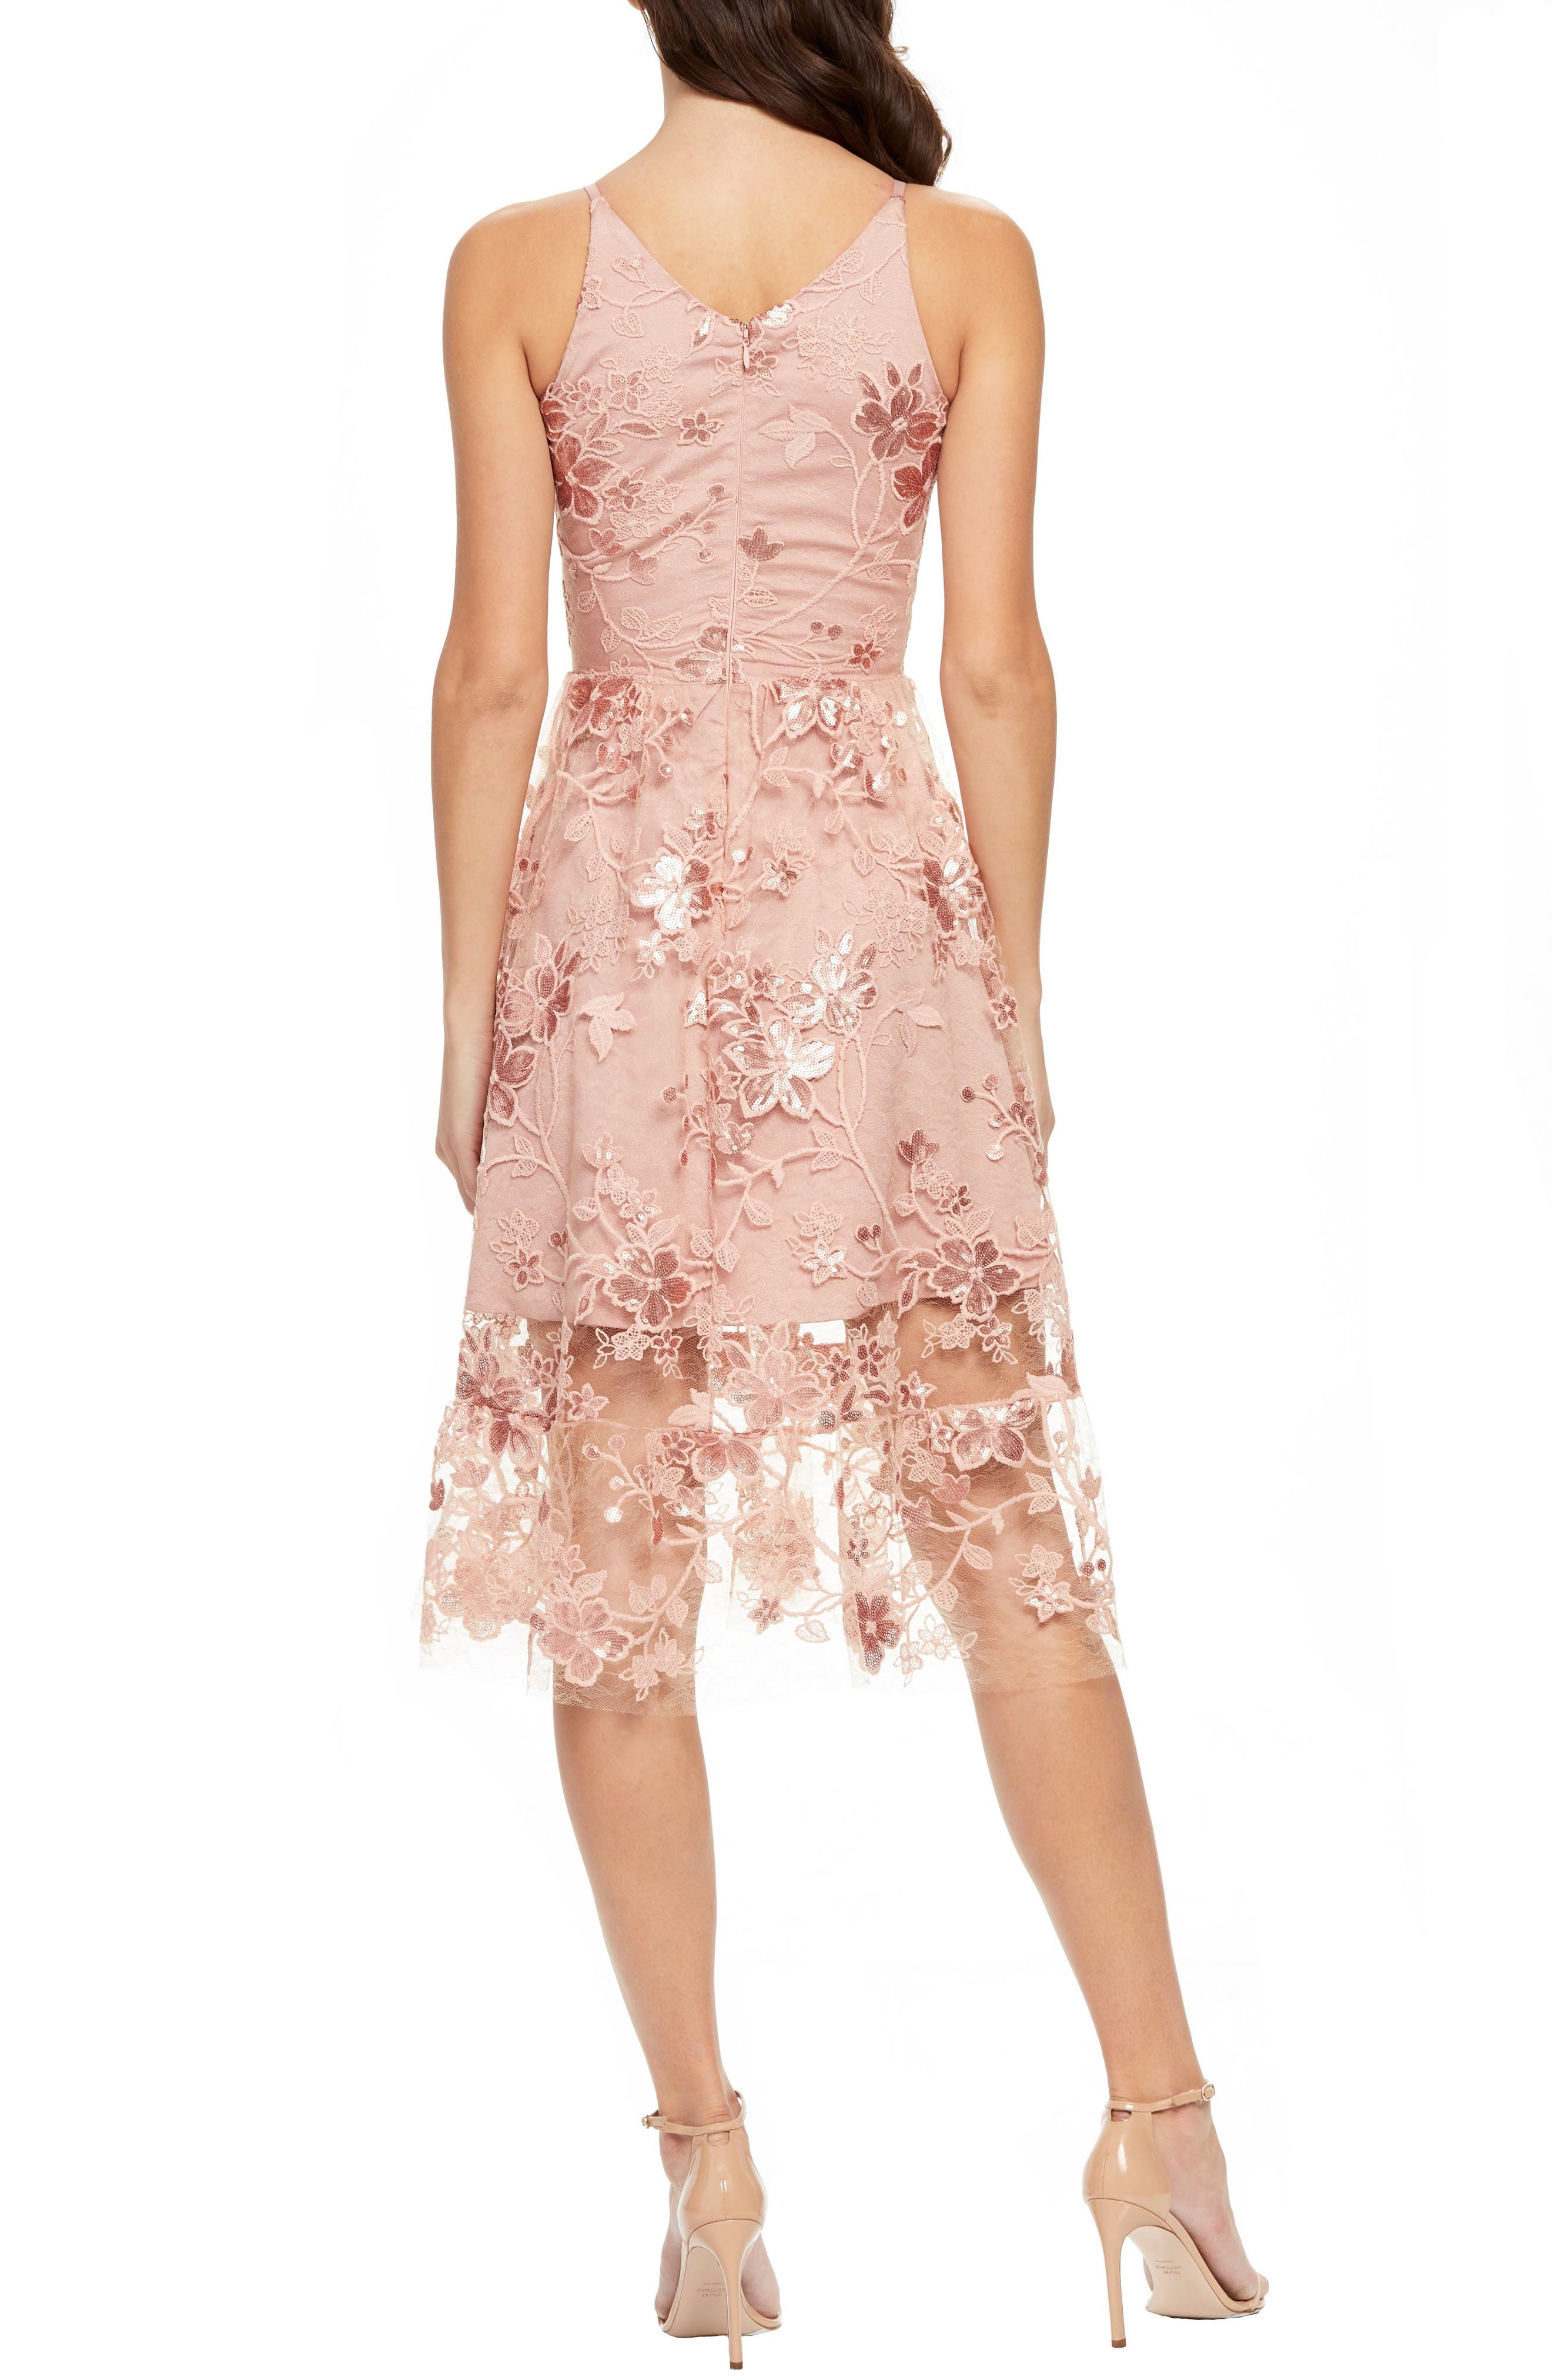 DRESS THE POPULATION, Ally 3D Floral Mesh Cocktail Dress, Alternate thumbnail 2, color, DUSTY PINK